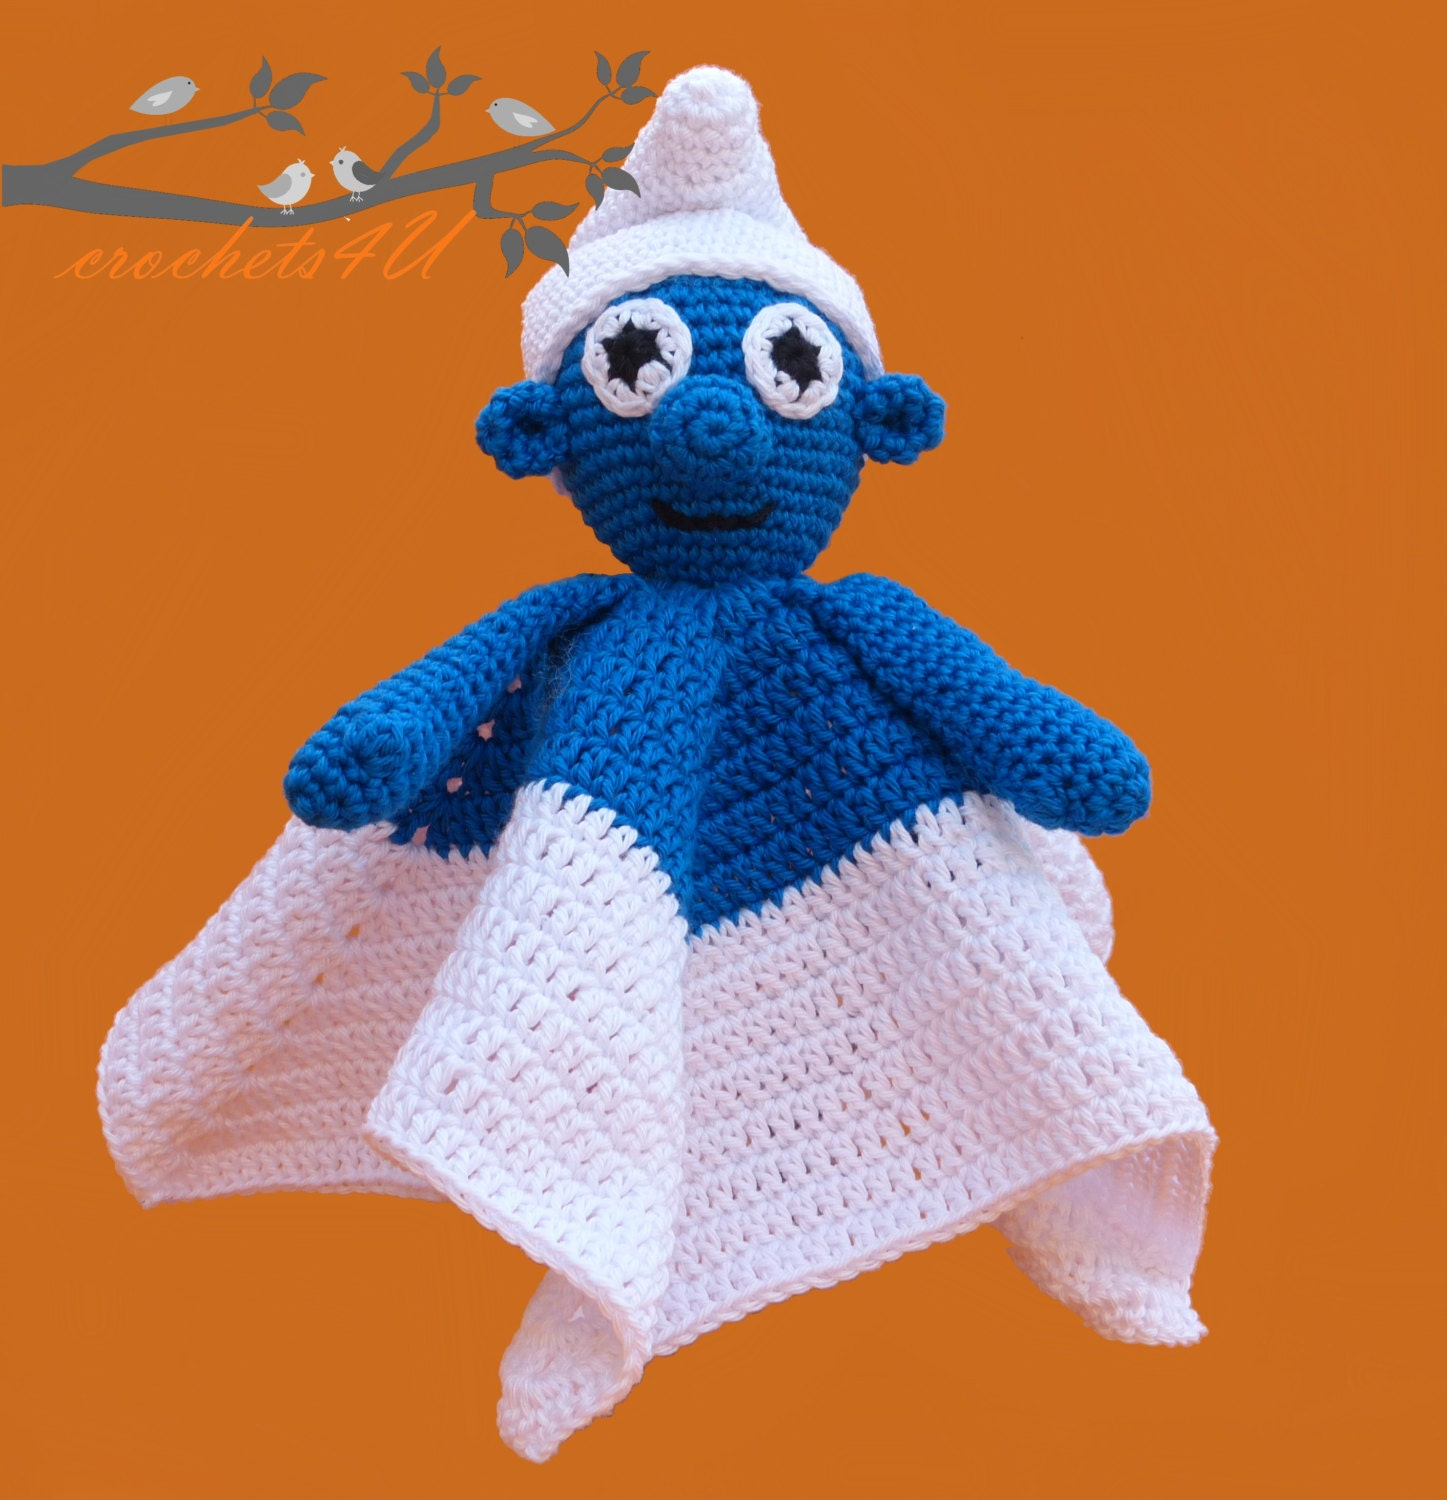 Crochet pattern lovey smurf security blanket crochet pattern this is a digital file bankloansurffo Image collections